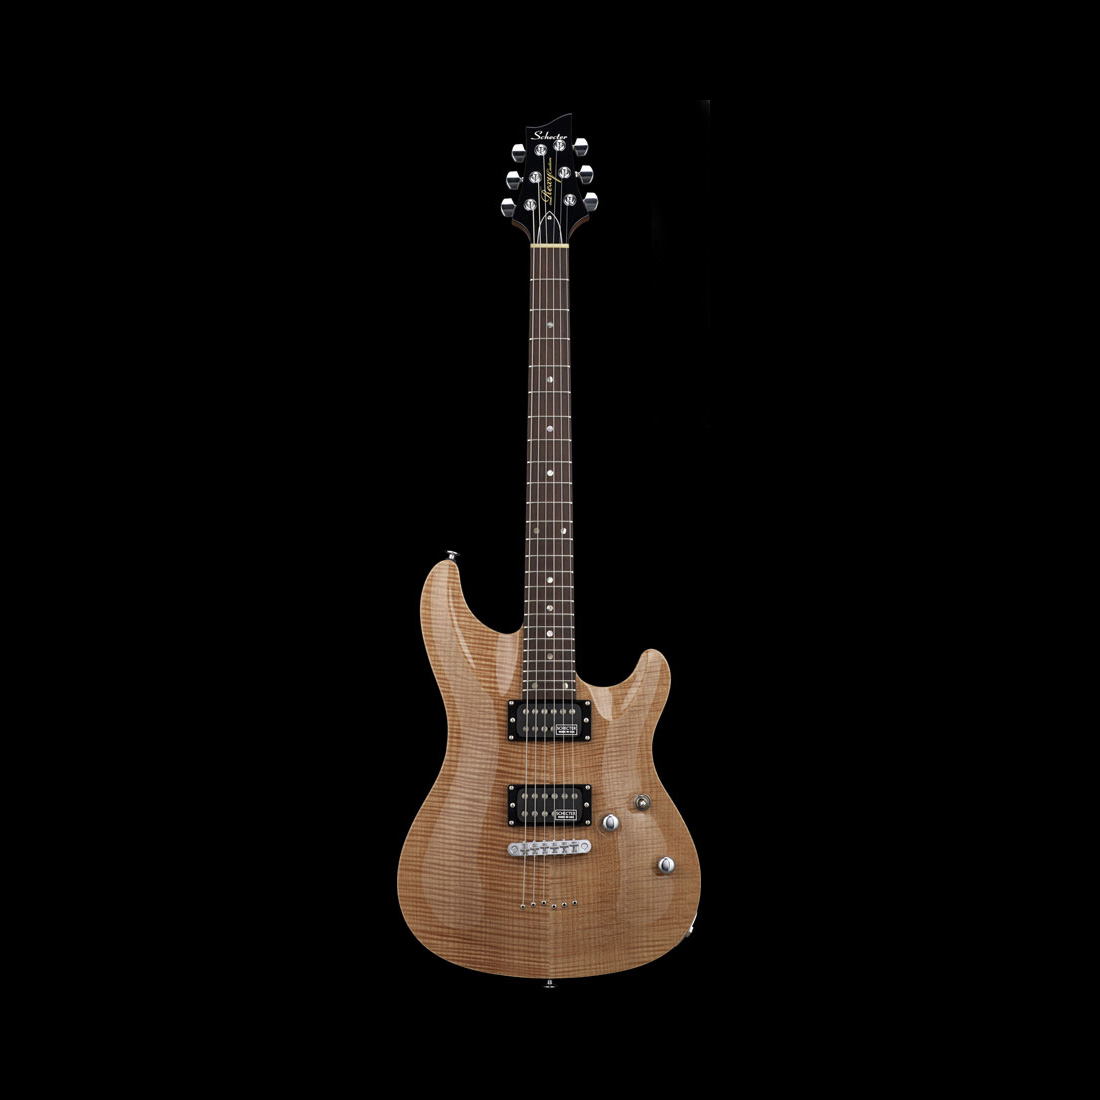 Schecter / RX-2-24-CTM-TOM Antique Natural シェクター エレキギター 《完全受注生産:予約受付中》